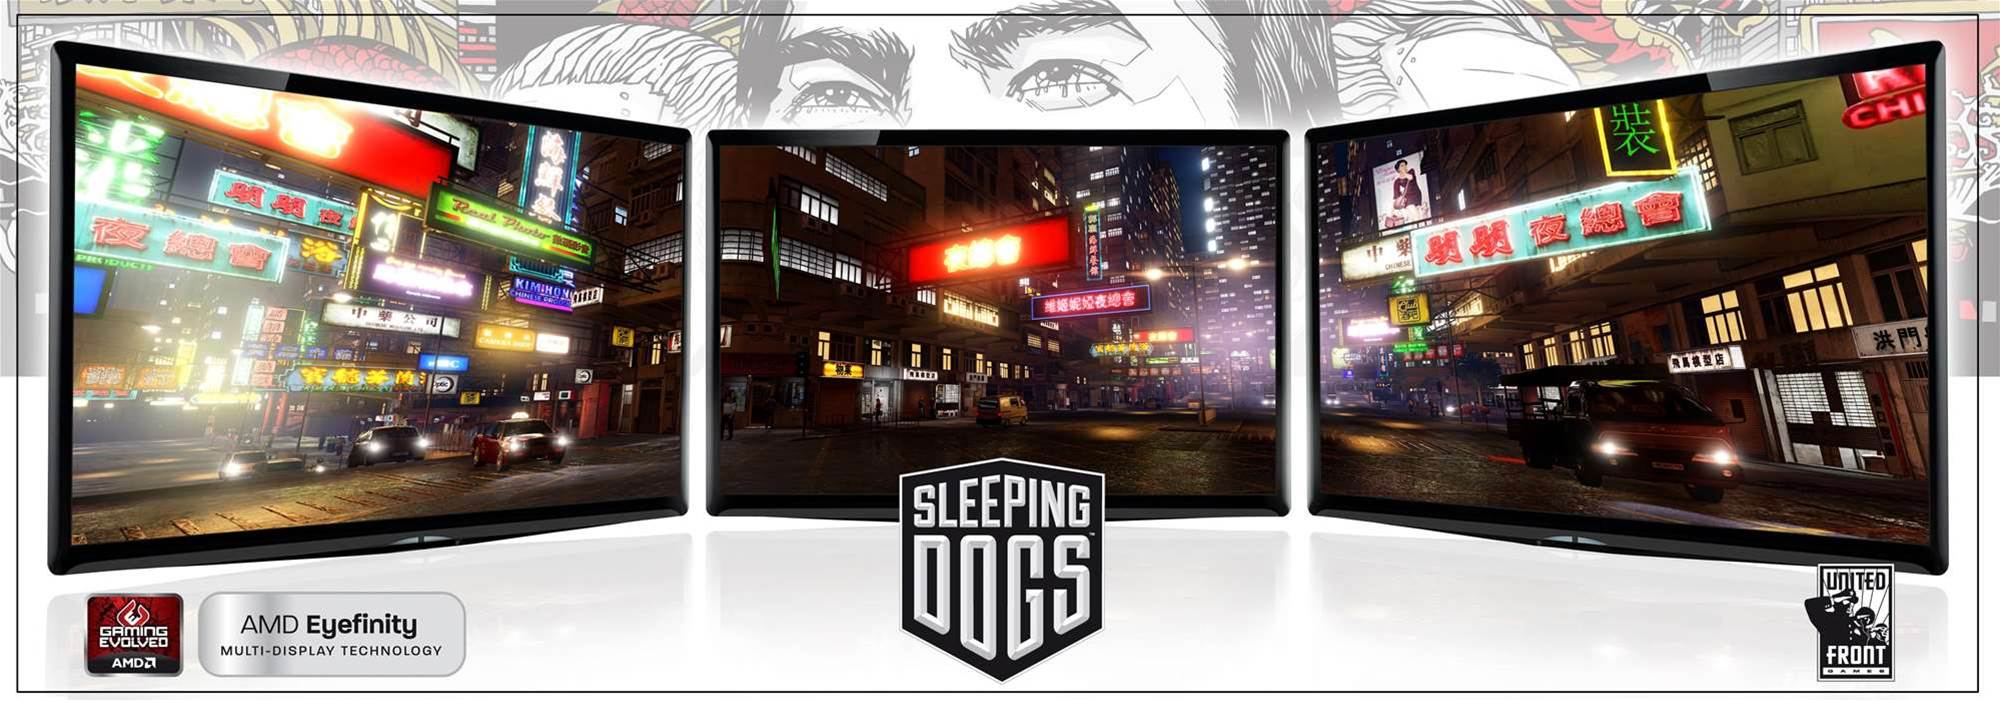 Sleeping Dogs PC requirements released